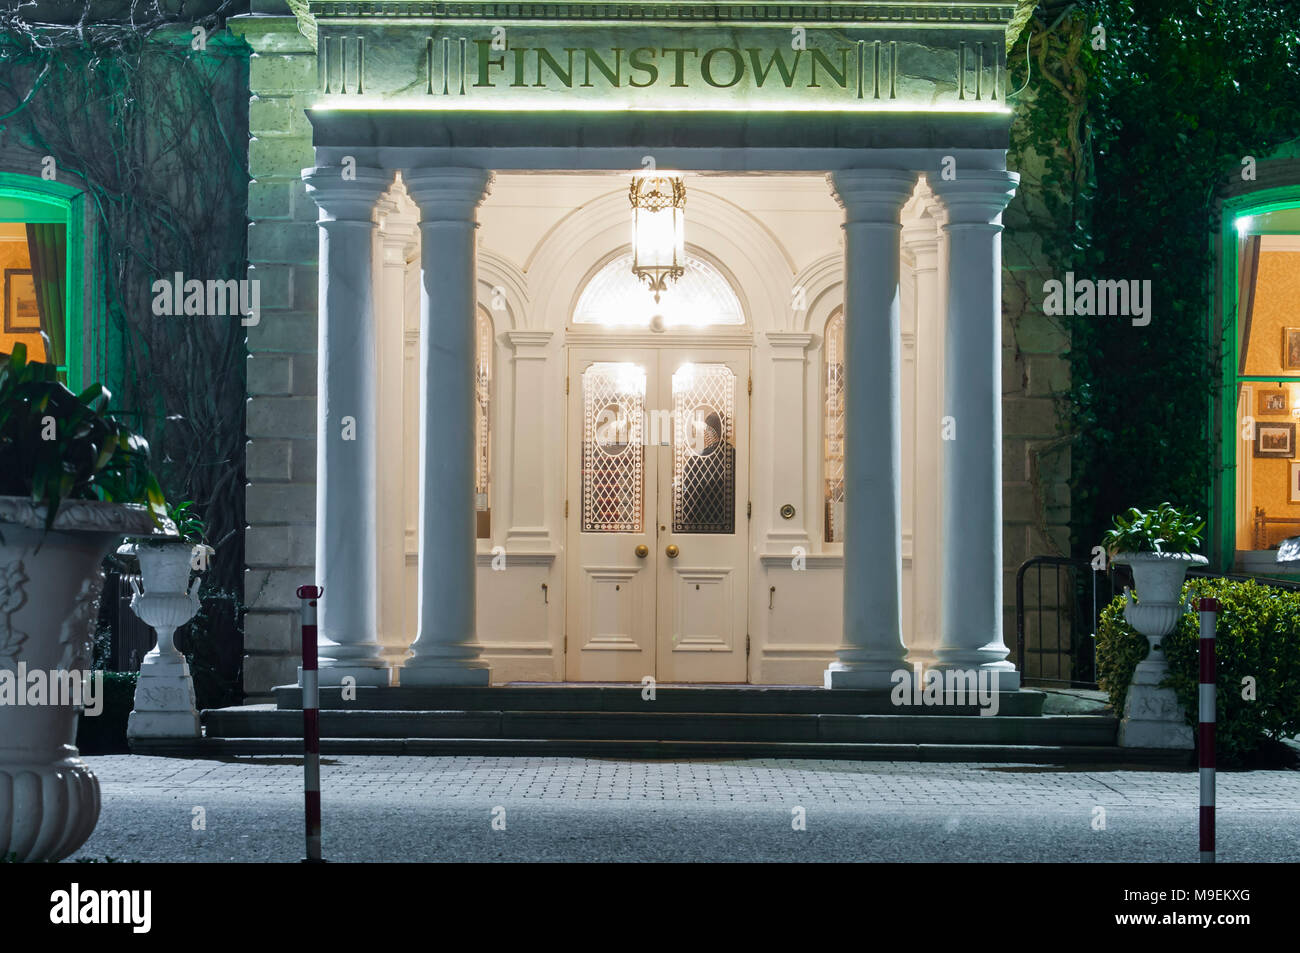 Entrance Door To Finnstown Castle Hotel At Night Lucan County